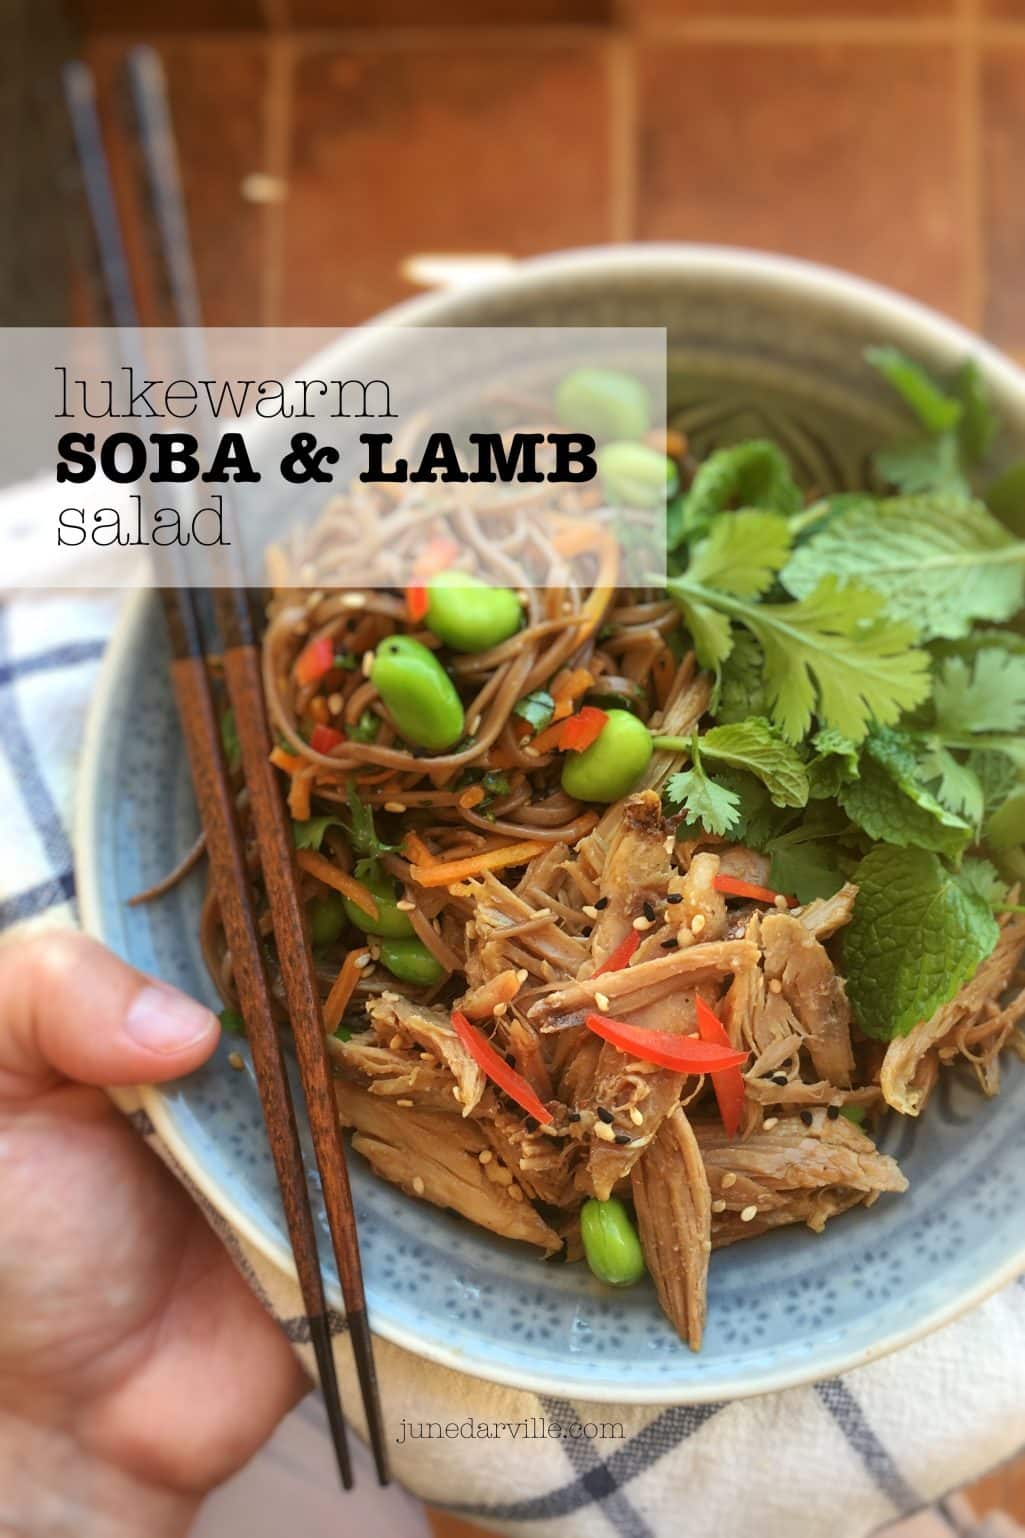 Lukewarm Shredded Lamb Salad with Soba Noodles & Soy Sauce